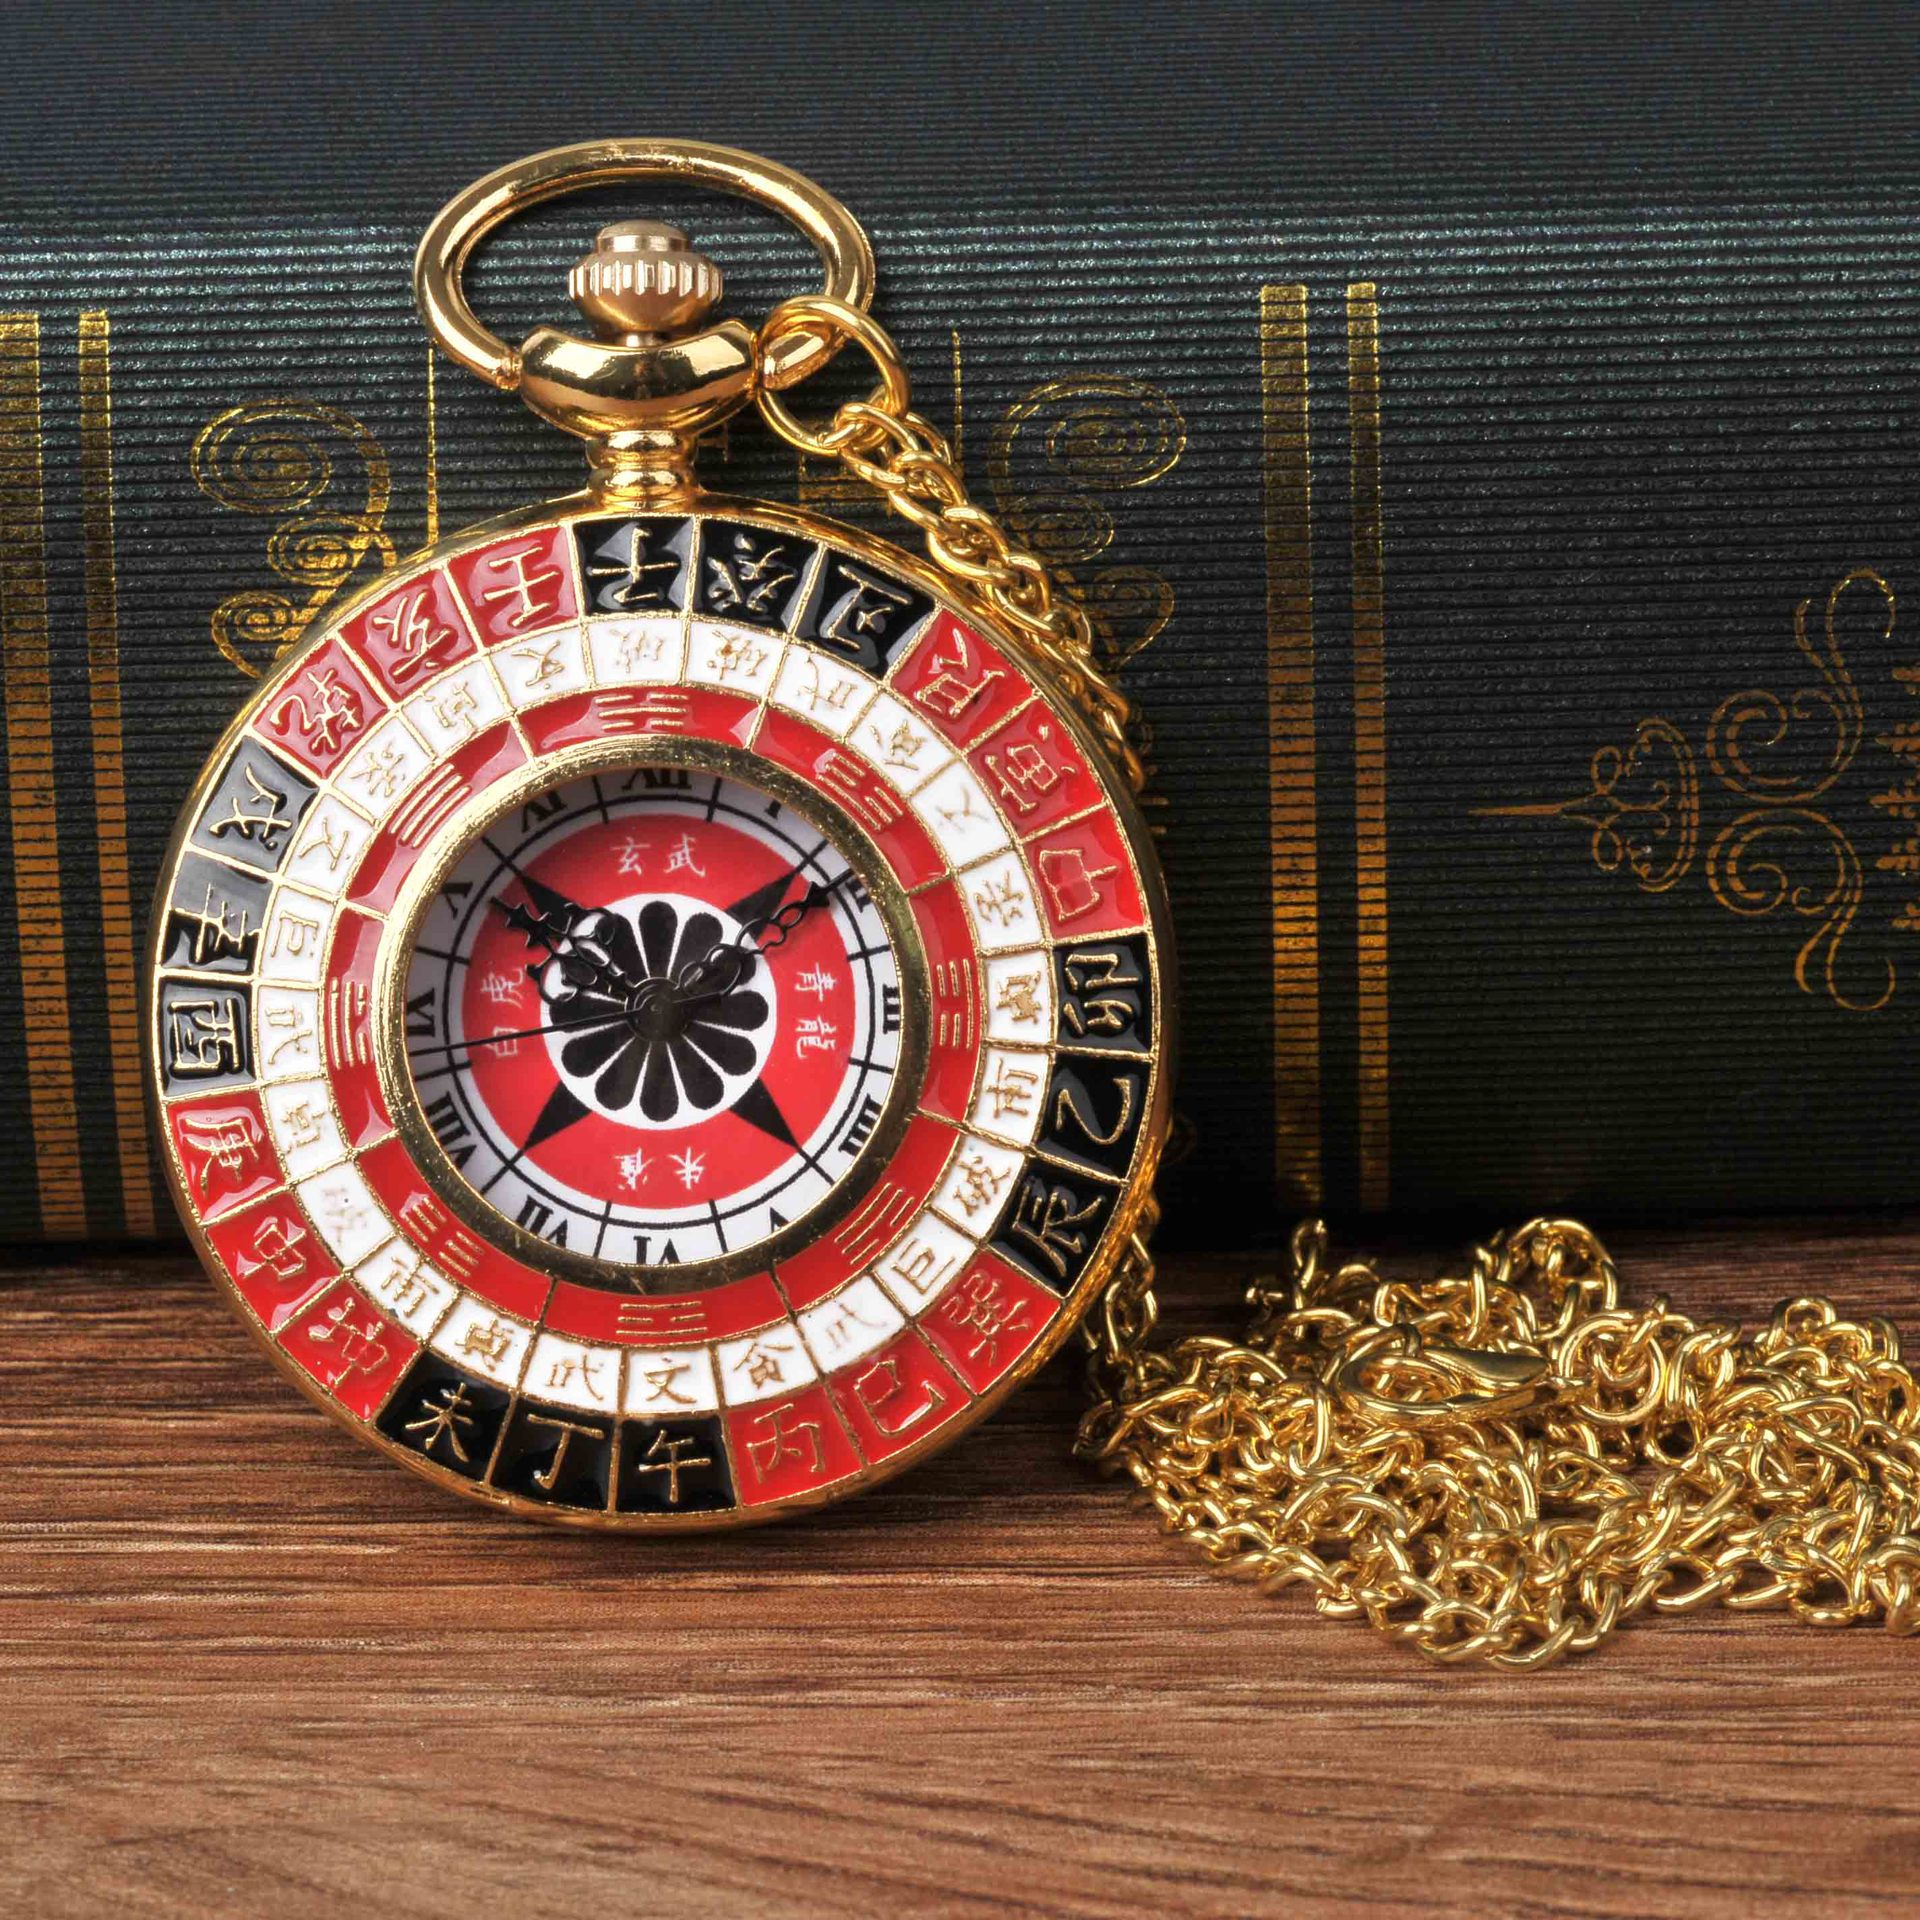 8844Large Pocket Watch Color Gossip China Time Scale Pocket Watch